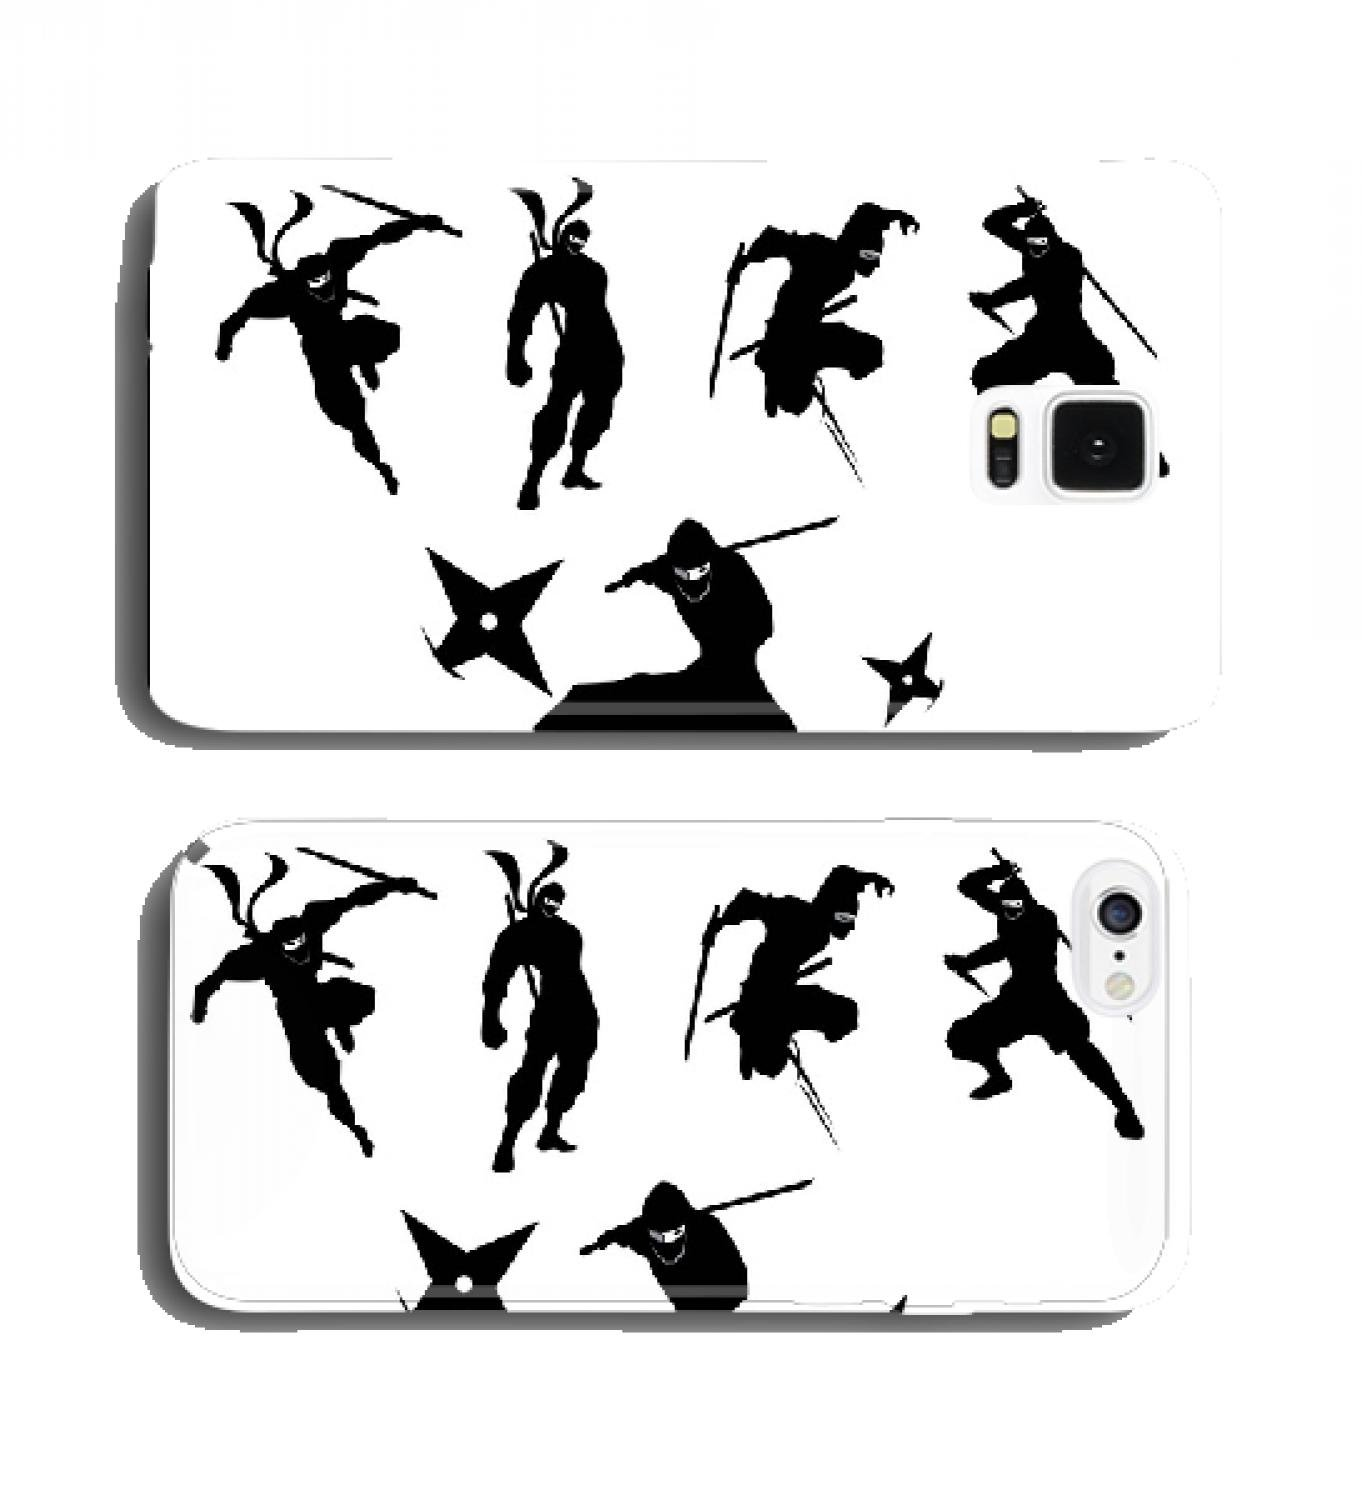 Ninja Shadow siluate Vector silhouette cell phone cover case ...